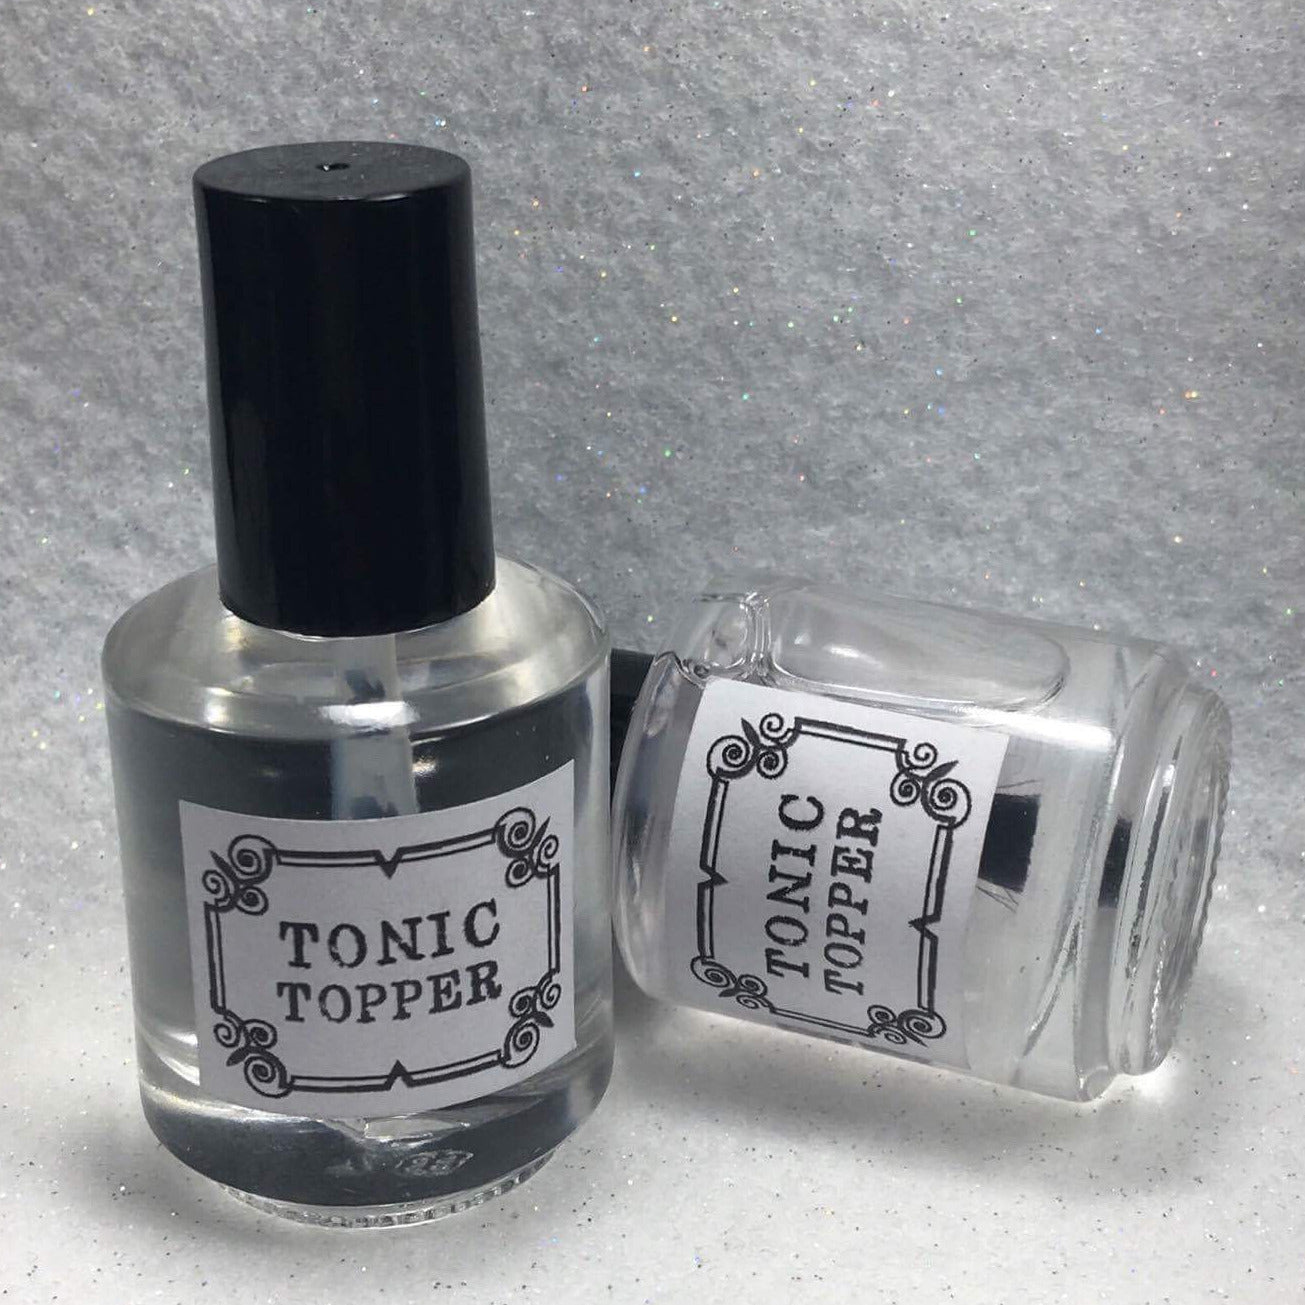 Tonic Polish - Tonic Topper (Quick Dry Top coat)